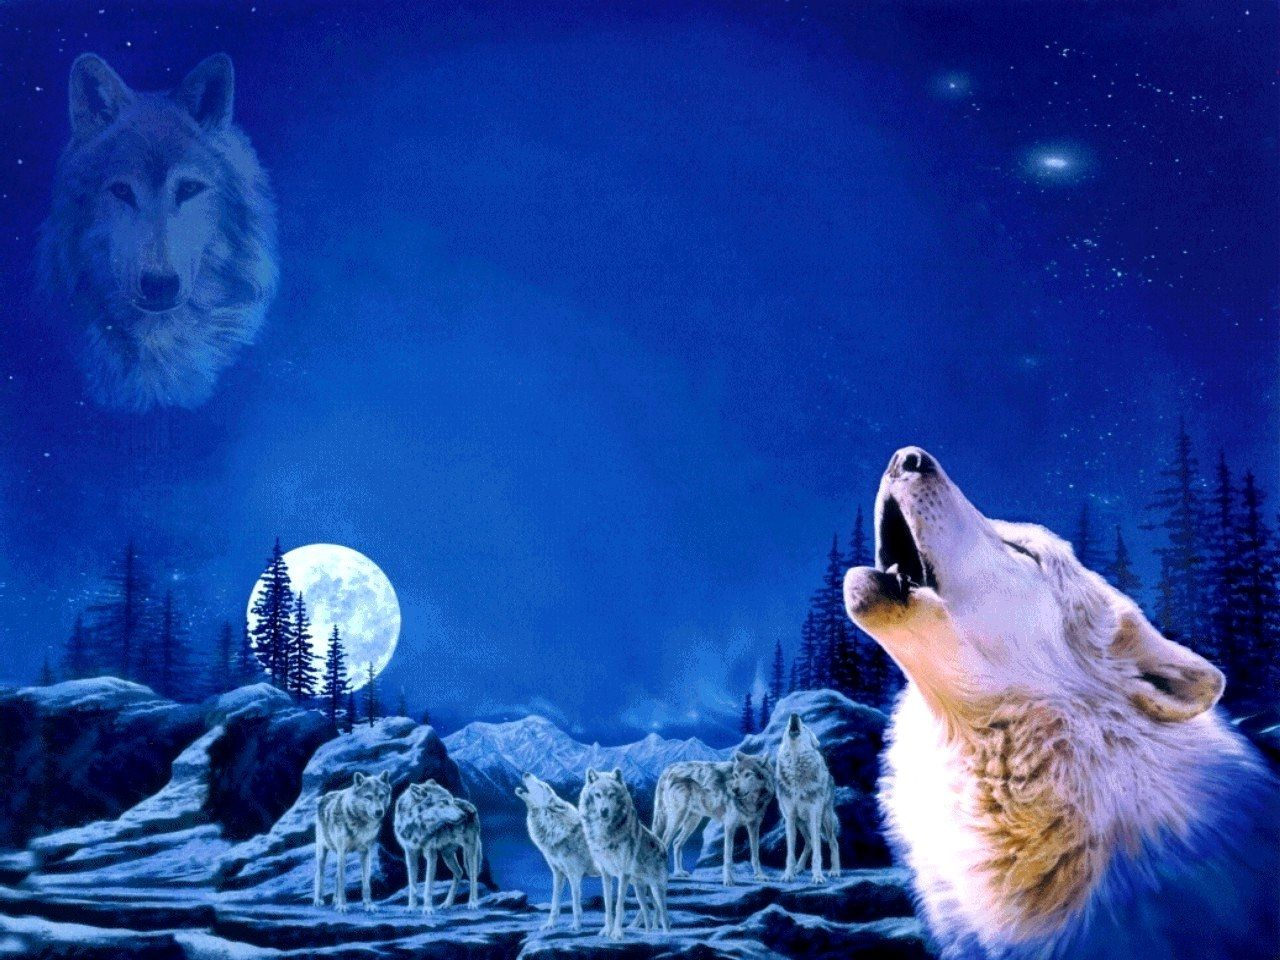 Anime Wolf Pack Wallpapers Hd Resolution For Laptop Wolf Pack Howling At The Moon 1280x960 Wallpaper Teahub Io